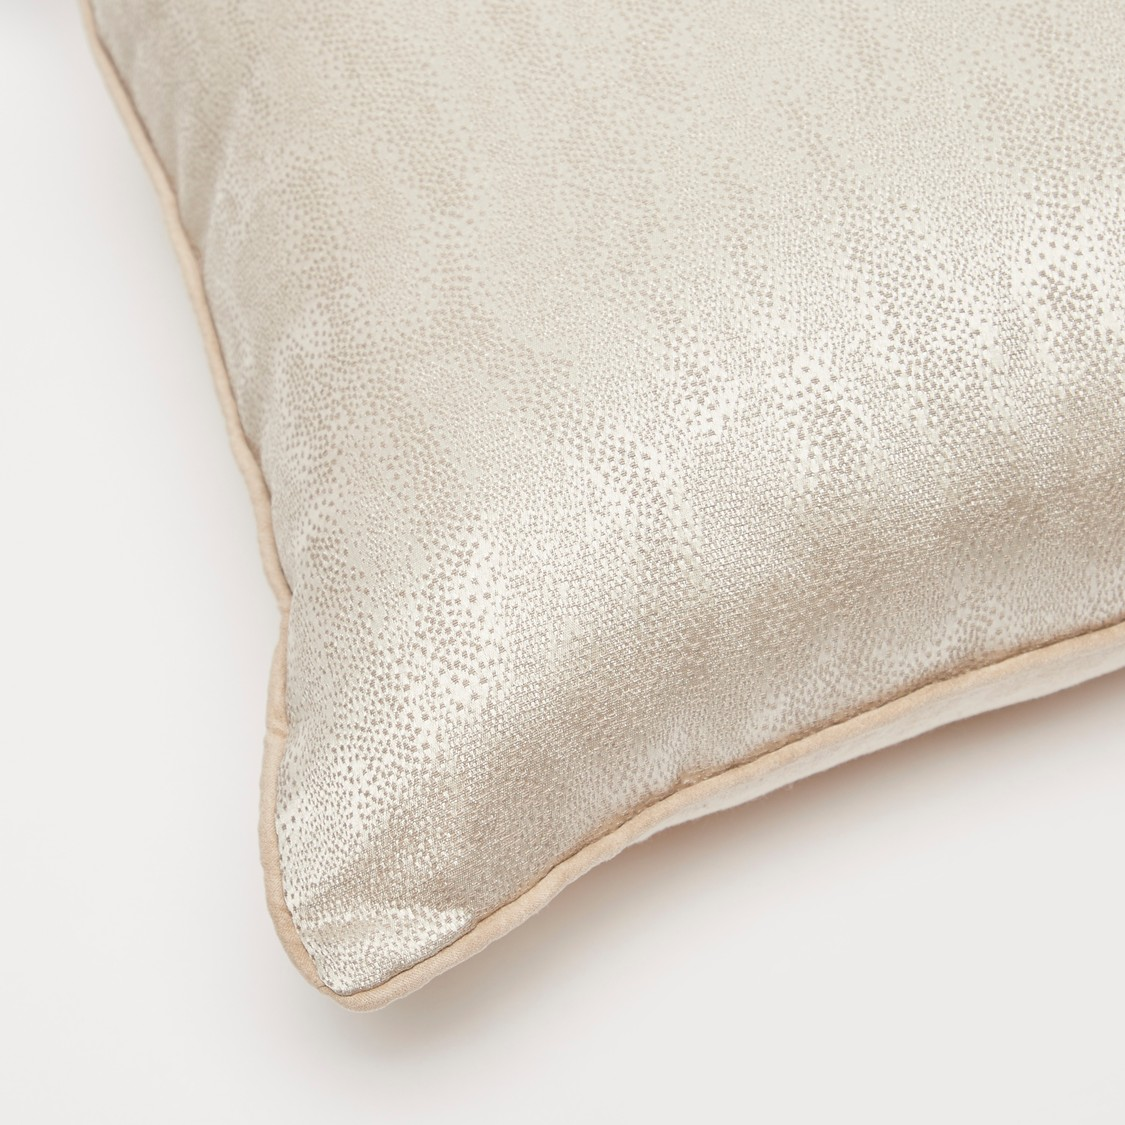 Textured Filled Cushion - 45x45 cms